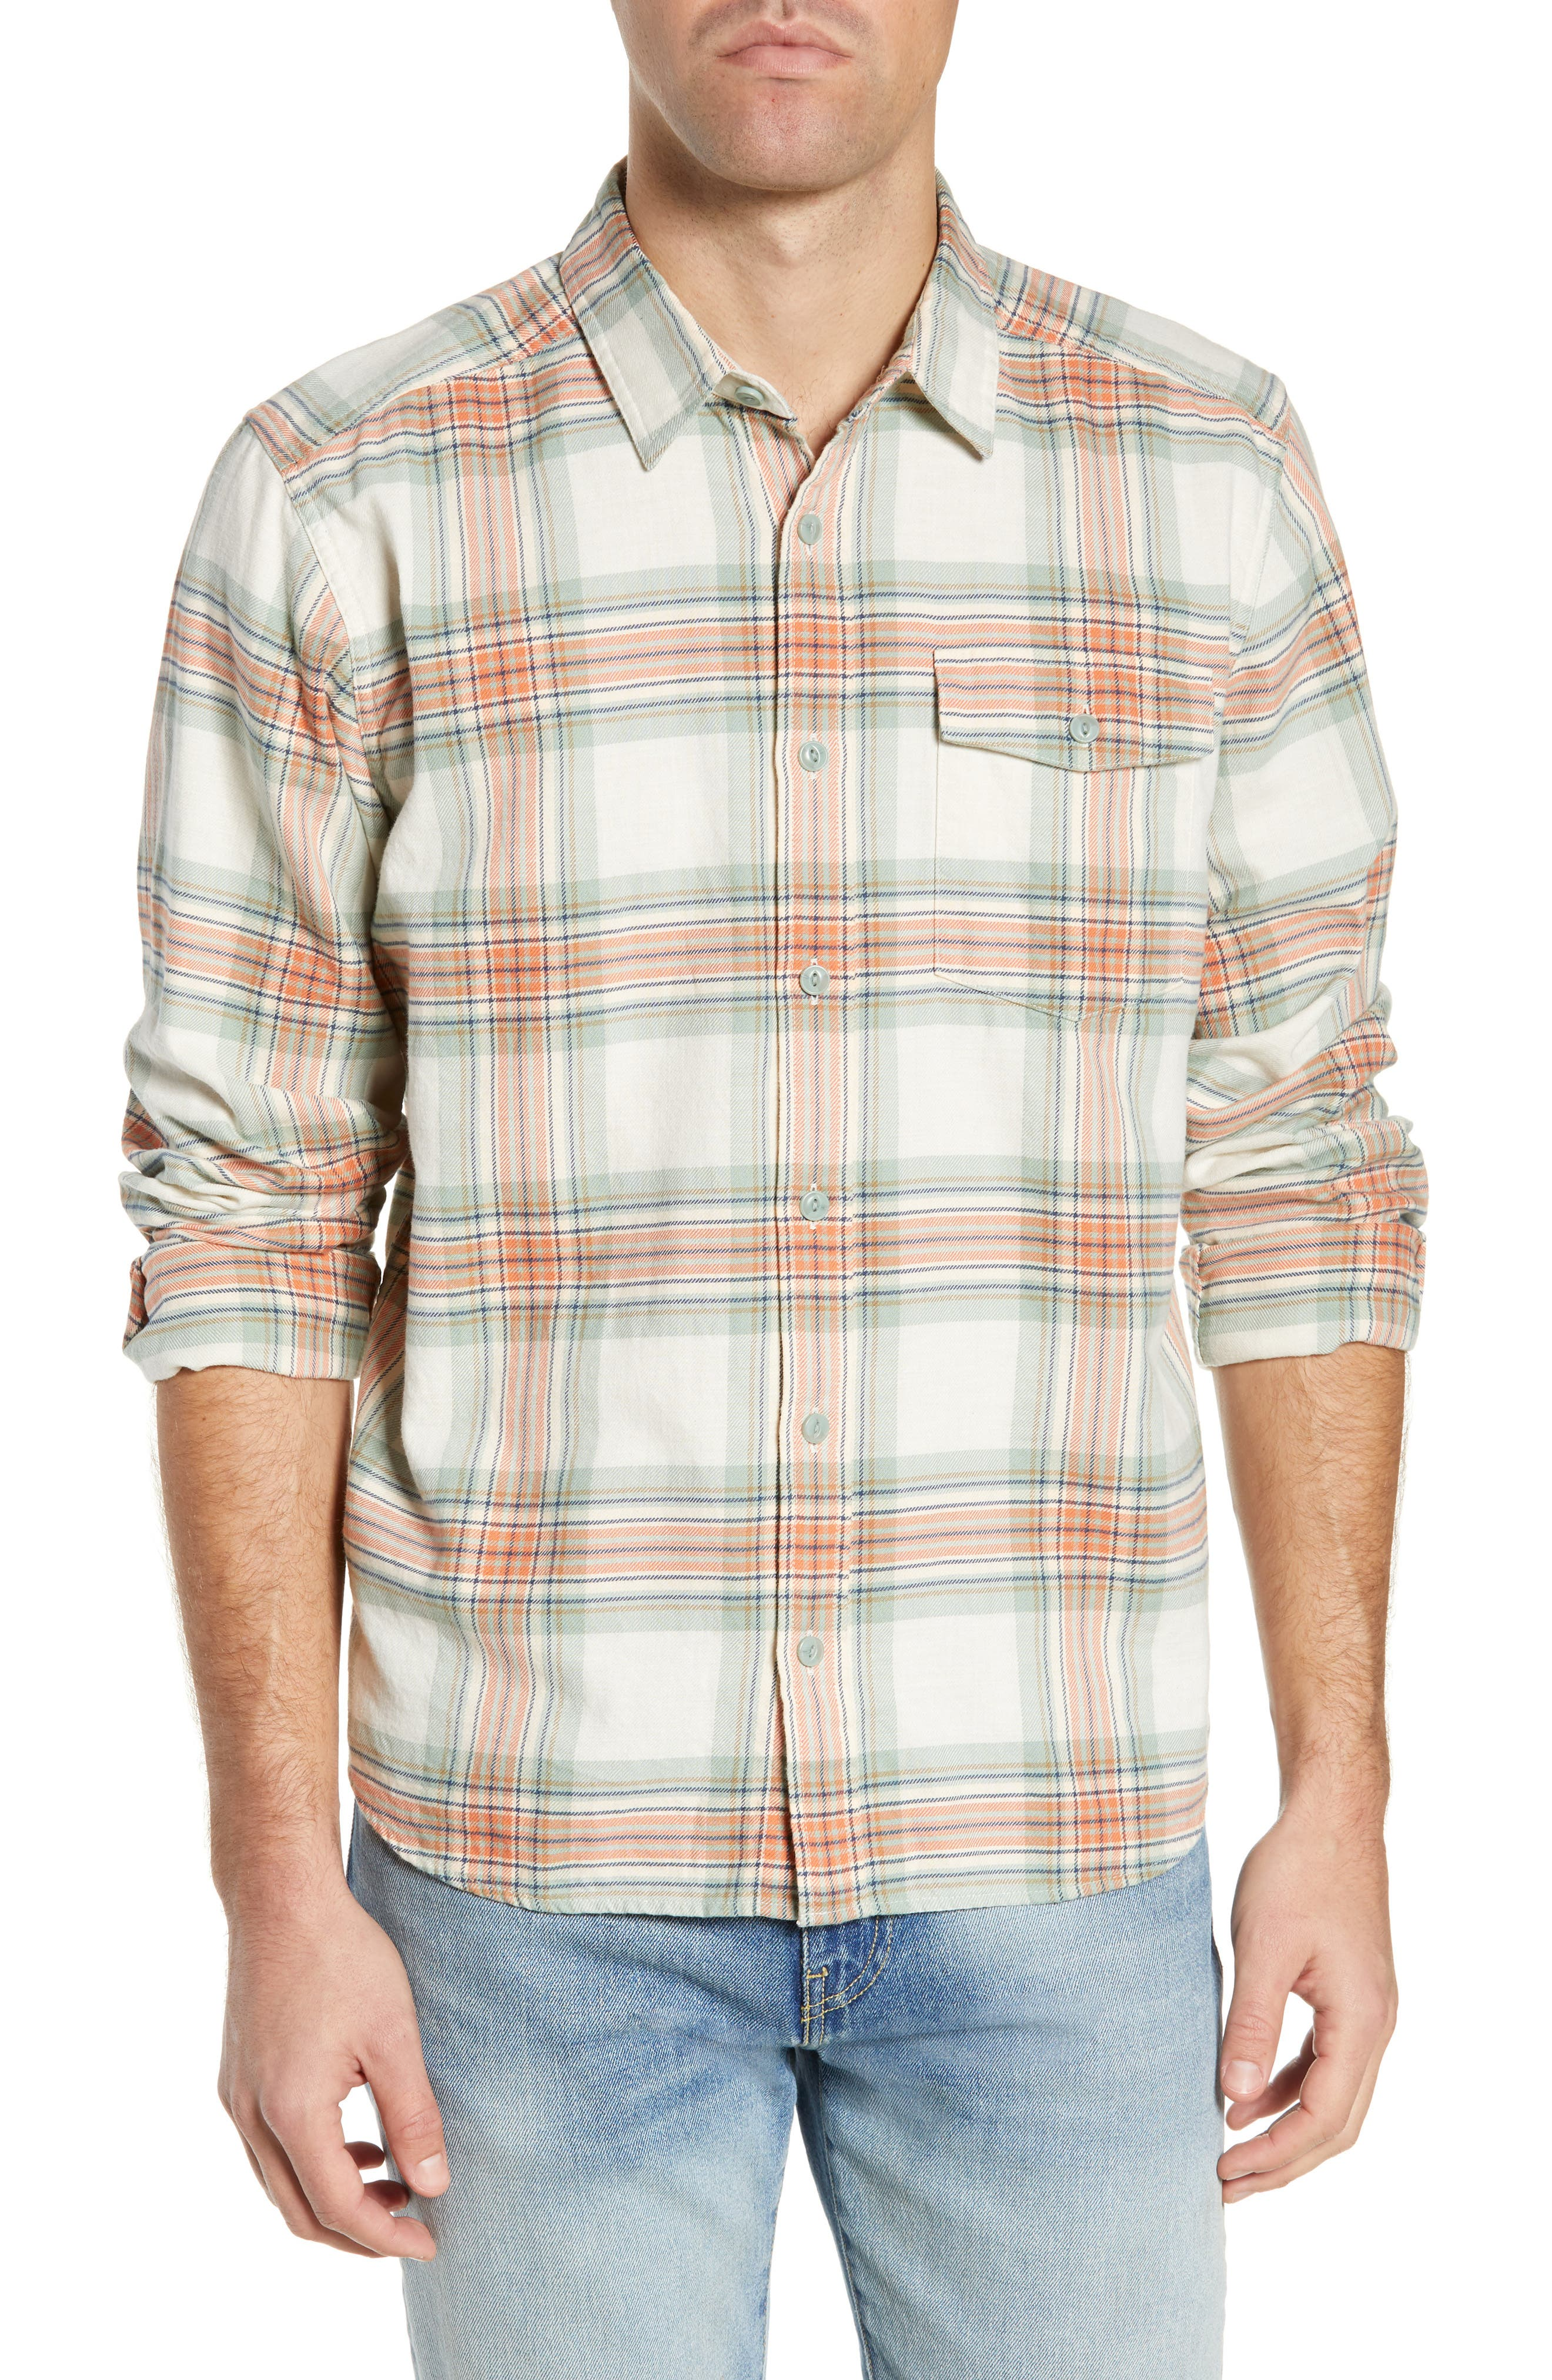 Patagonia Regular Fit Organic Cotton Flannel Shirt, Green